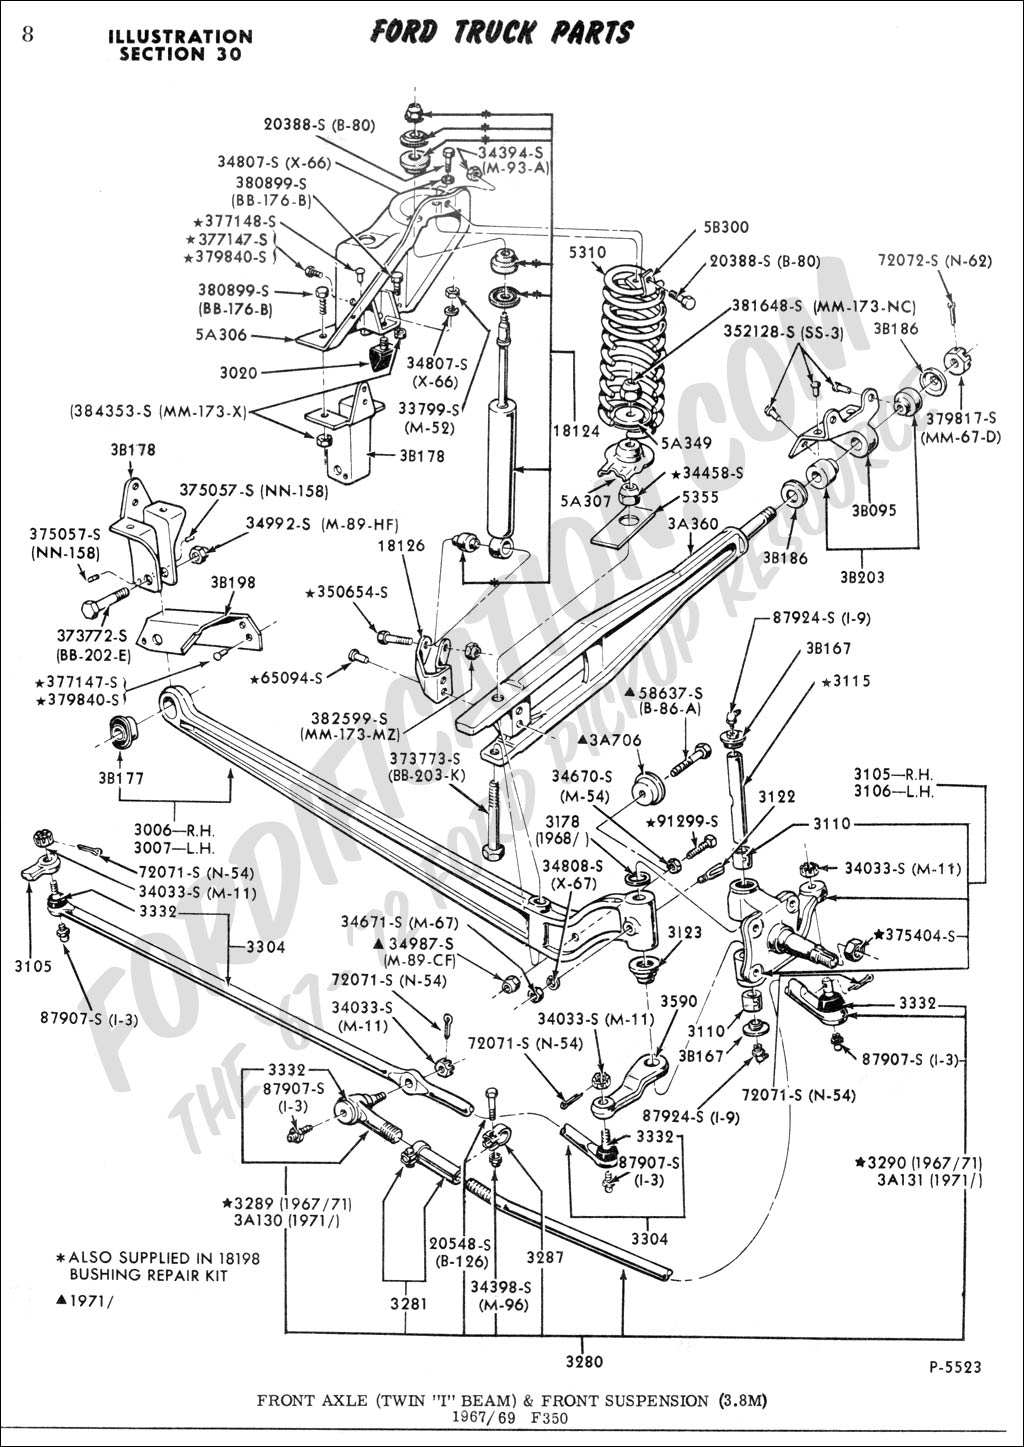 1999 Ford F350 Parts Diagram on 2006 ford focus rear suspension diagram